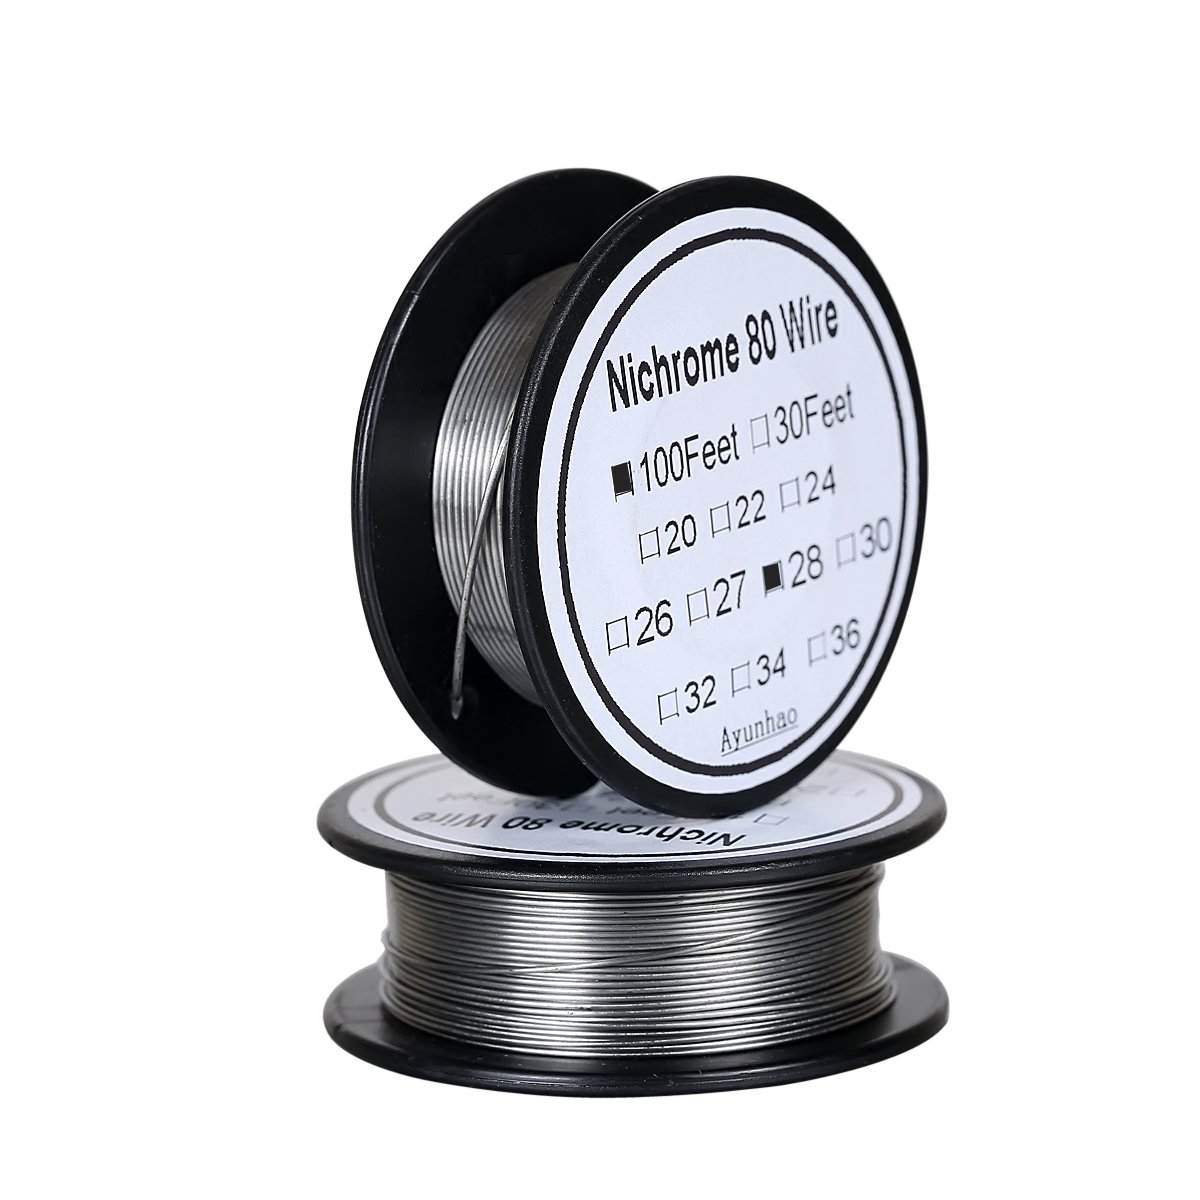 Nichrome 80 wire 24 Gauge AWG Stainless Steel Resistance Wire 0.51 ...